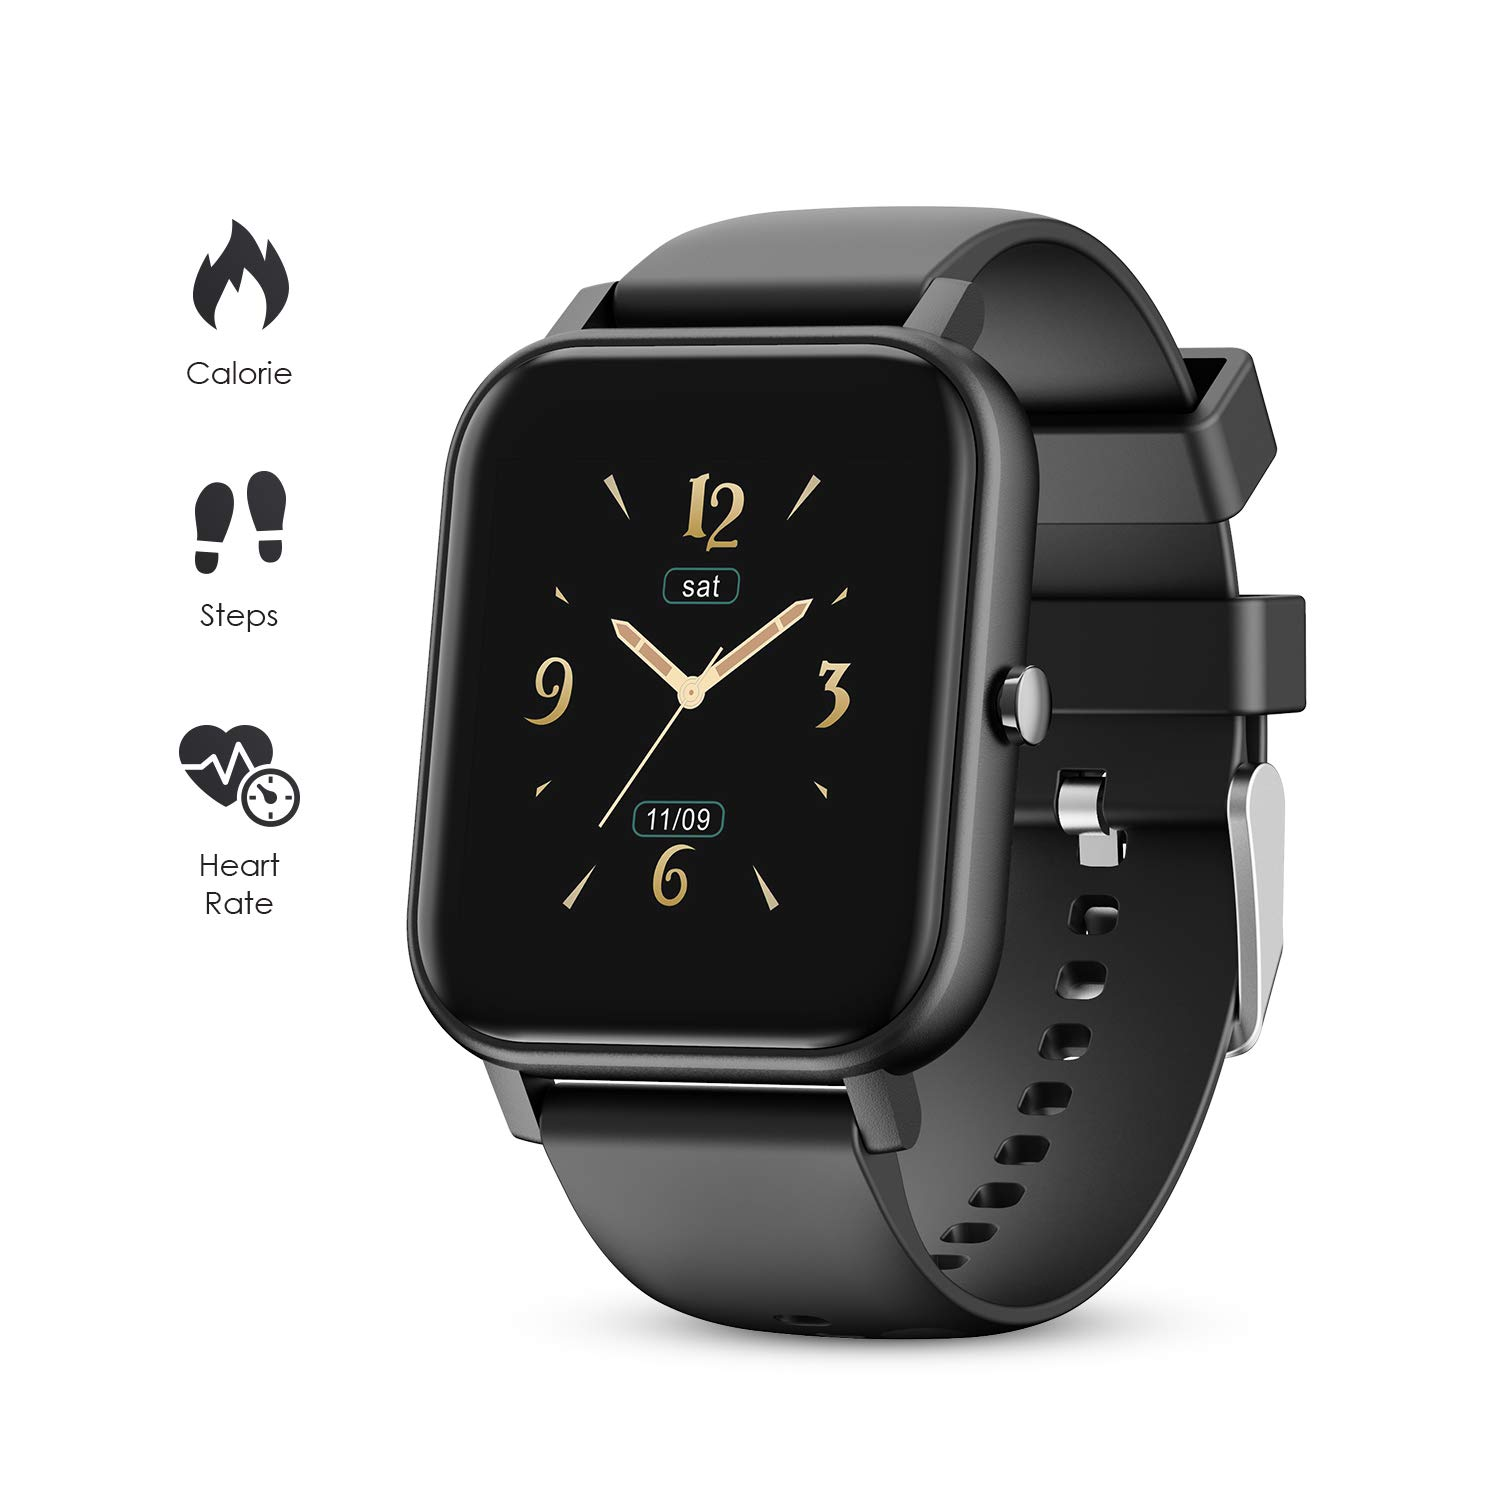 GOKOO Smart Watch for Men Sport Activity Tracker Sleep and All-Day Heart Rate Monitor Blood Pressure Camera Music Remote Control Weather Full Touch Waterproof IP67 Smartwatch Pedometer Calorie Black